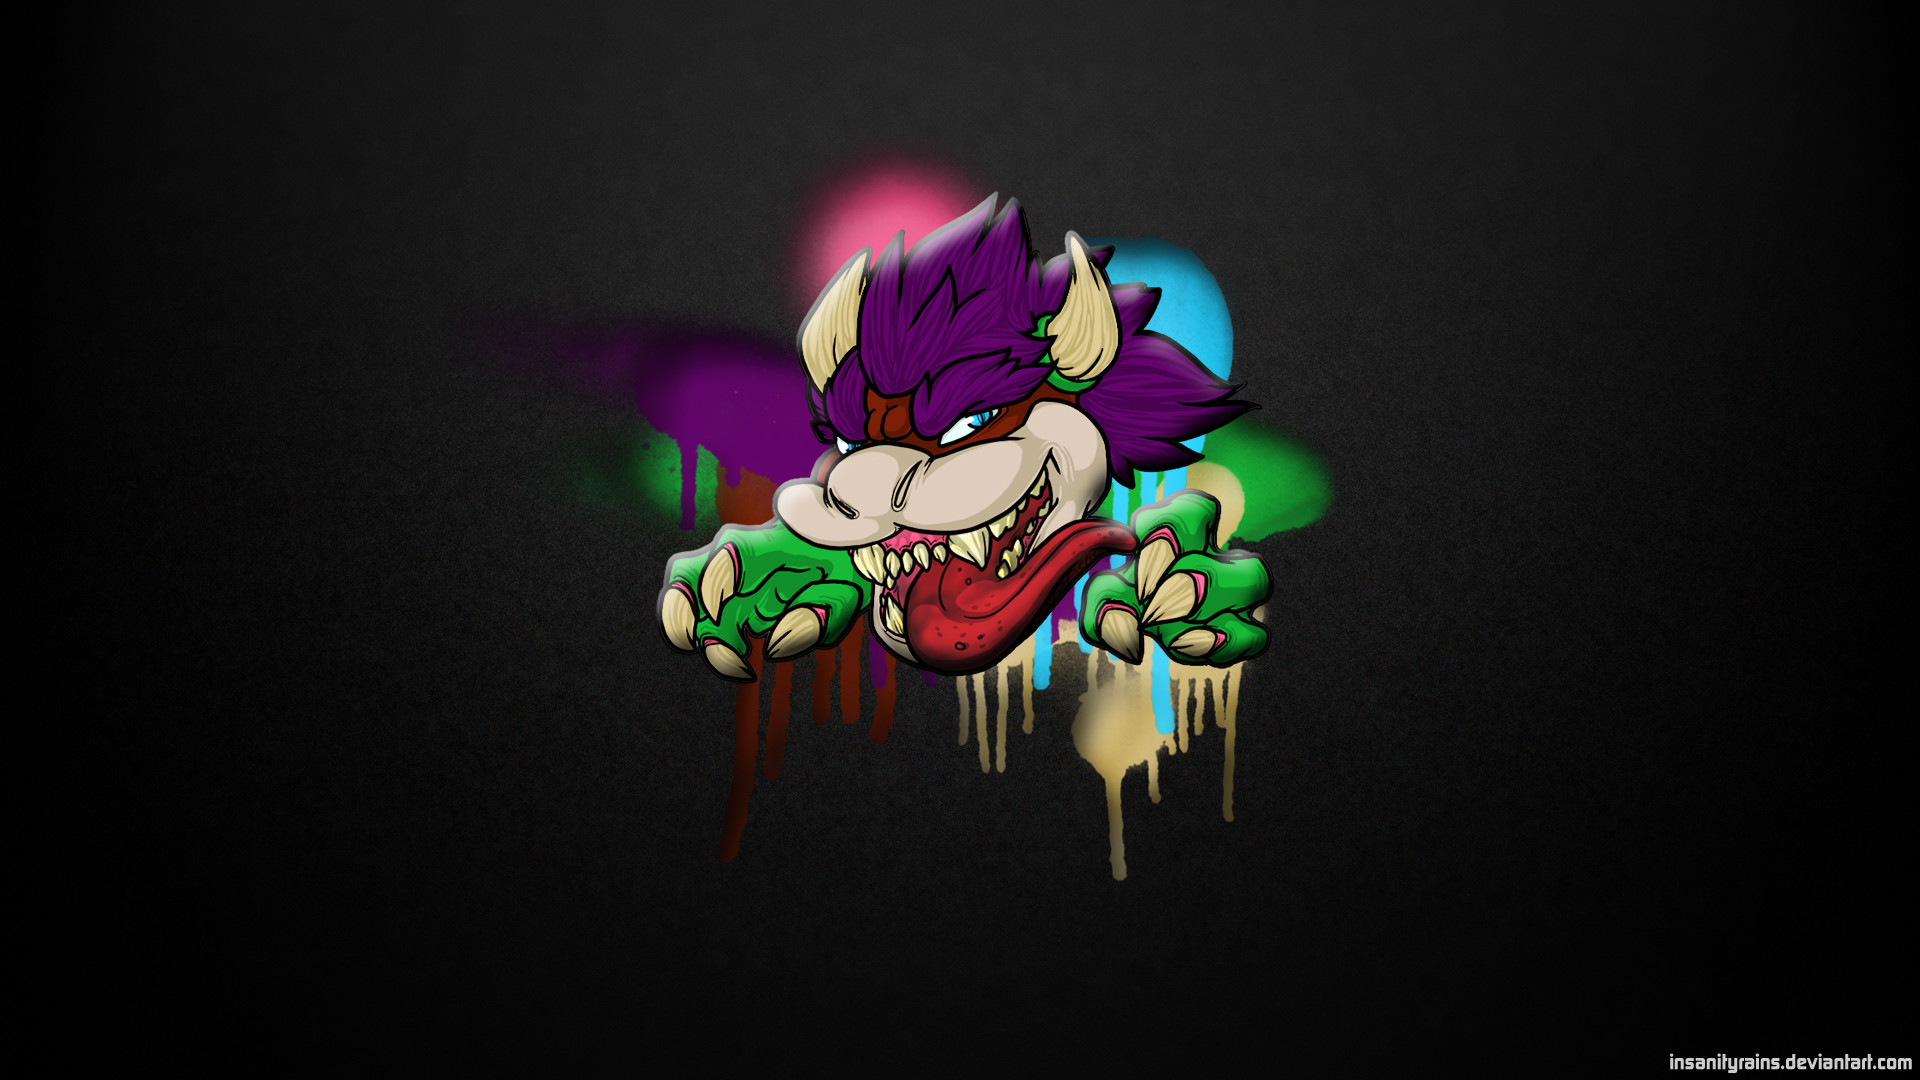 1920x1080 Bowser Remix Wallpaper  by insanityrains Bowser Remix Wallpaper   by insanityrains